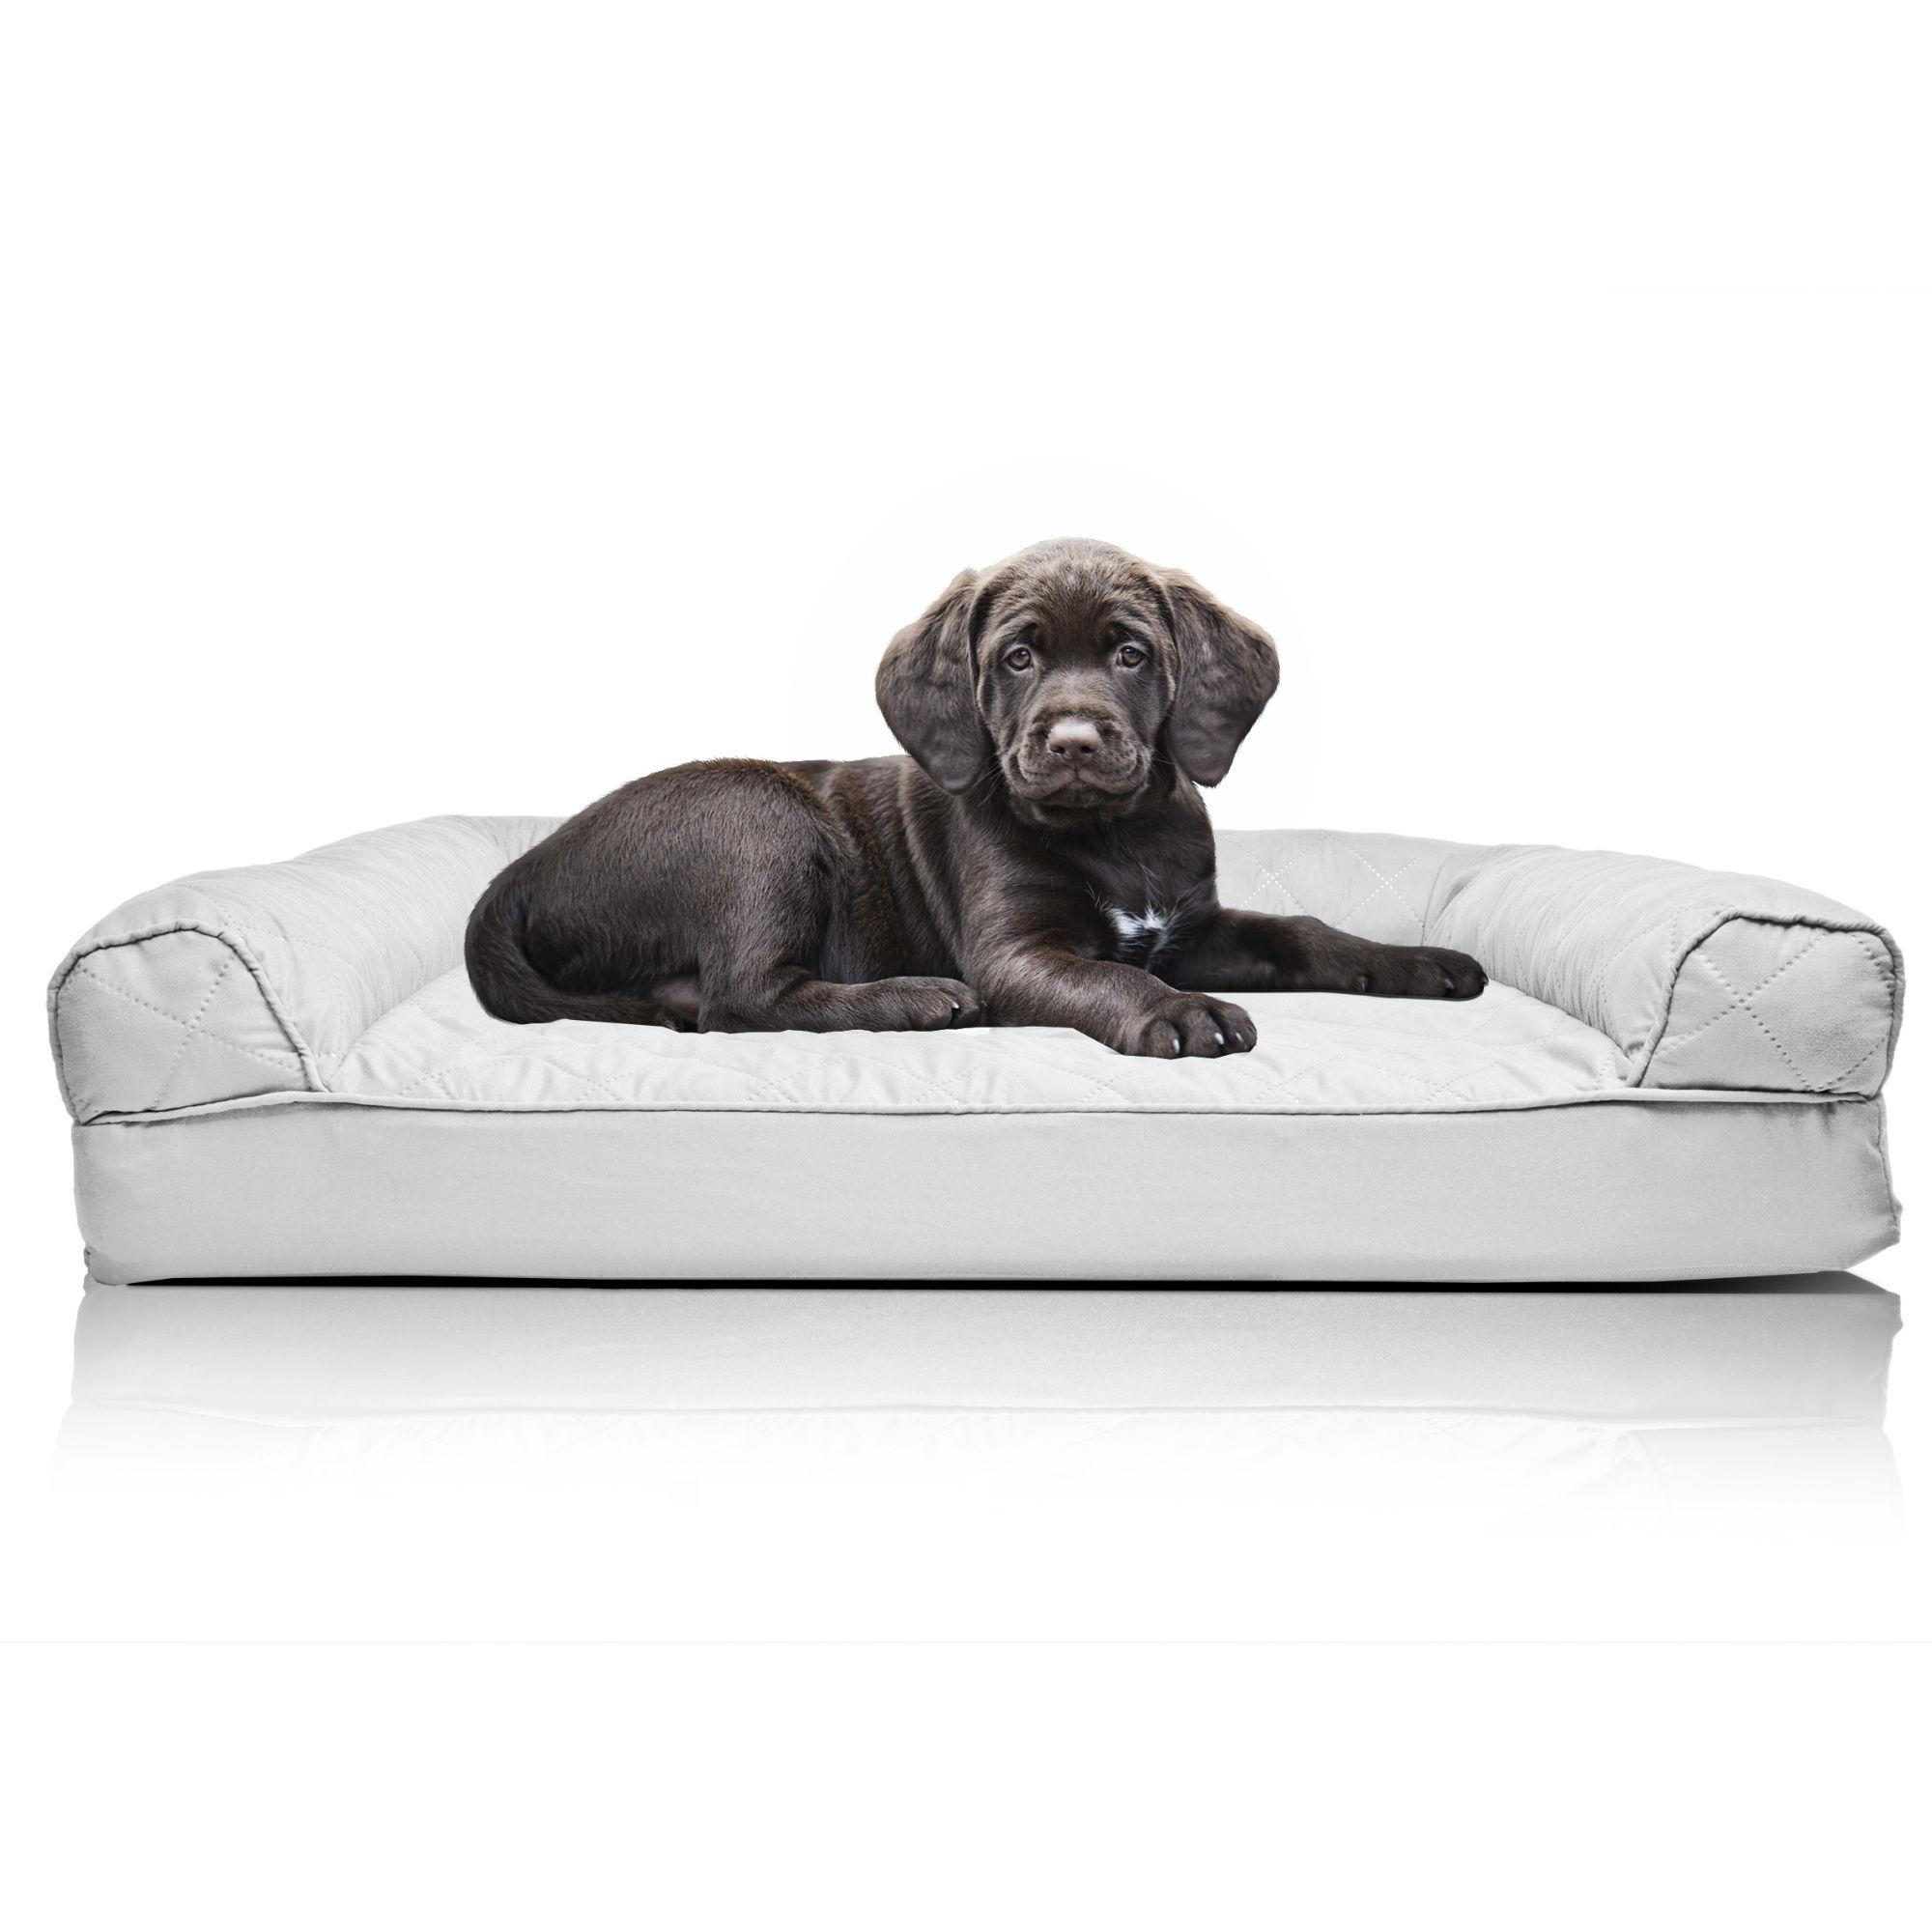 Furhaven Quilted Orthopedic Sofa Pet Bed - Silver Gray